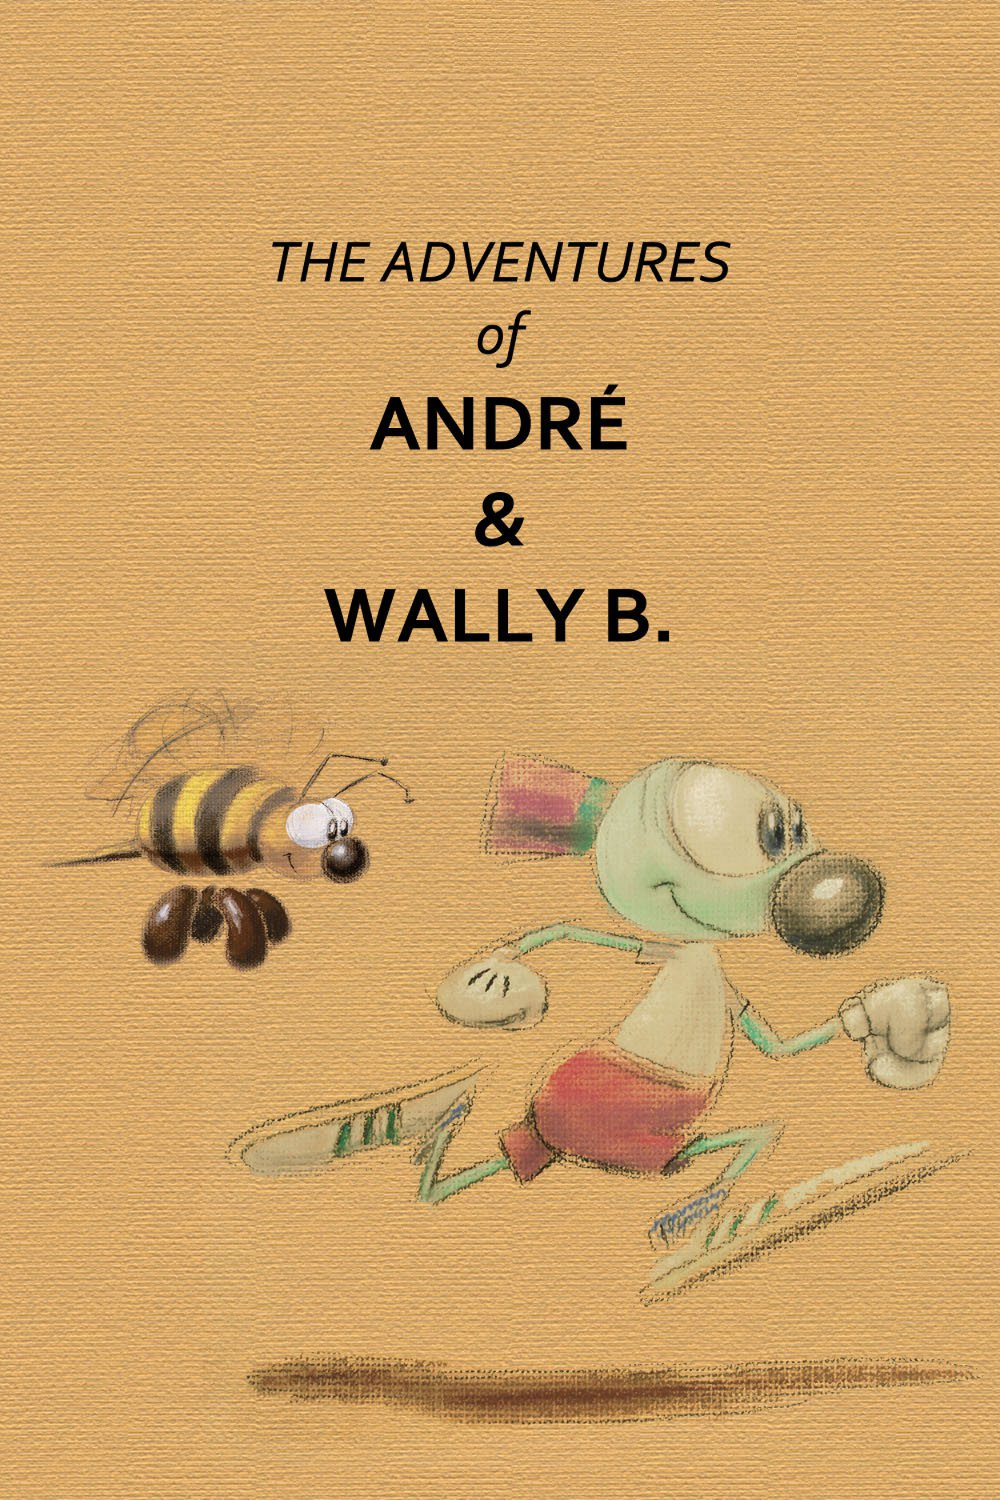 andre and wally b.jpg